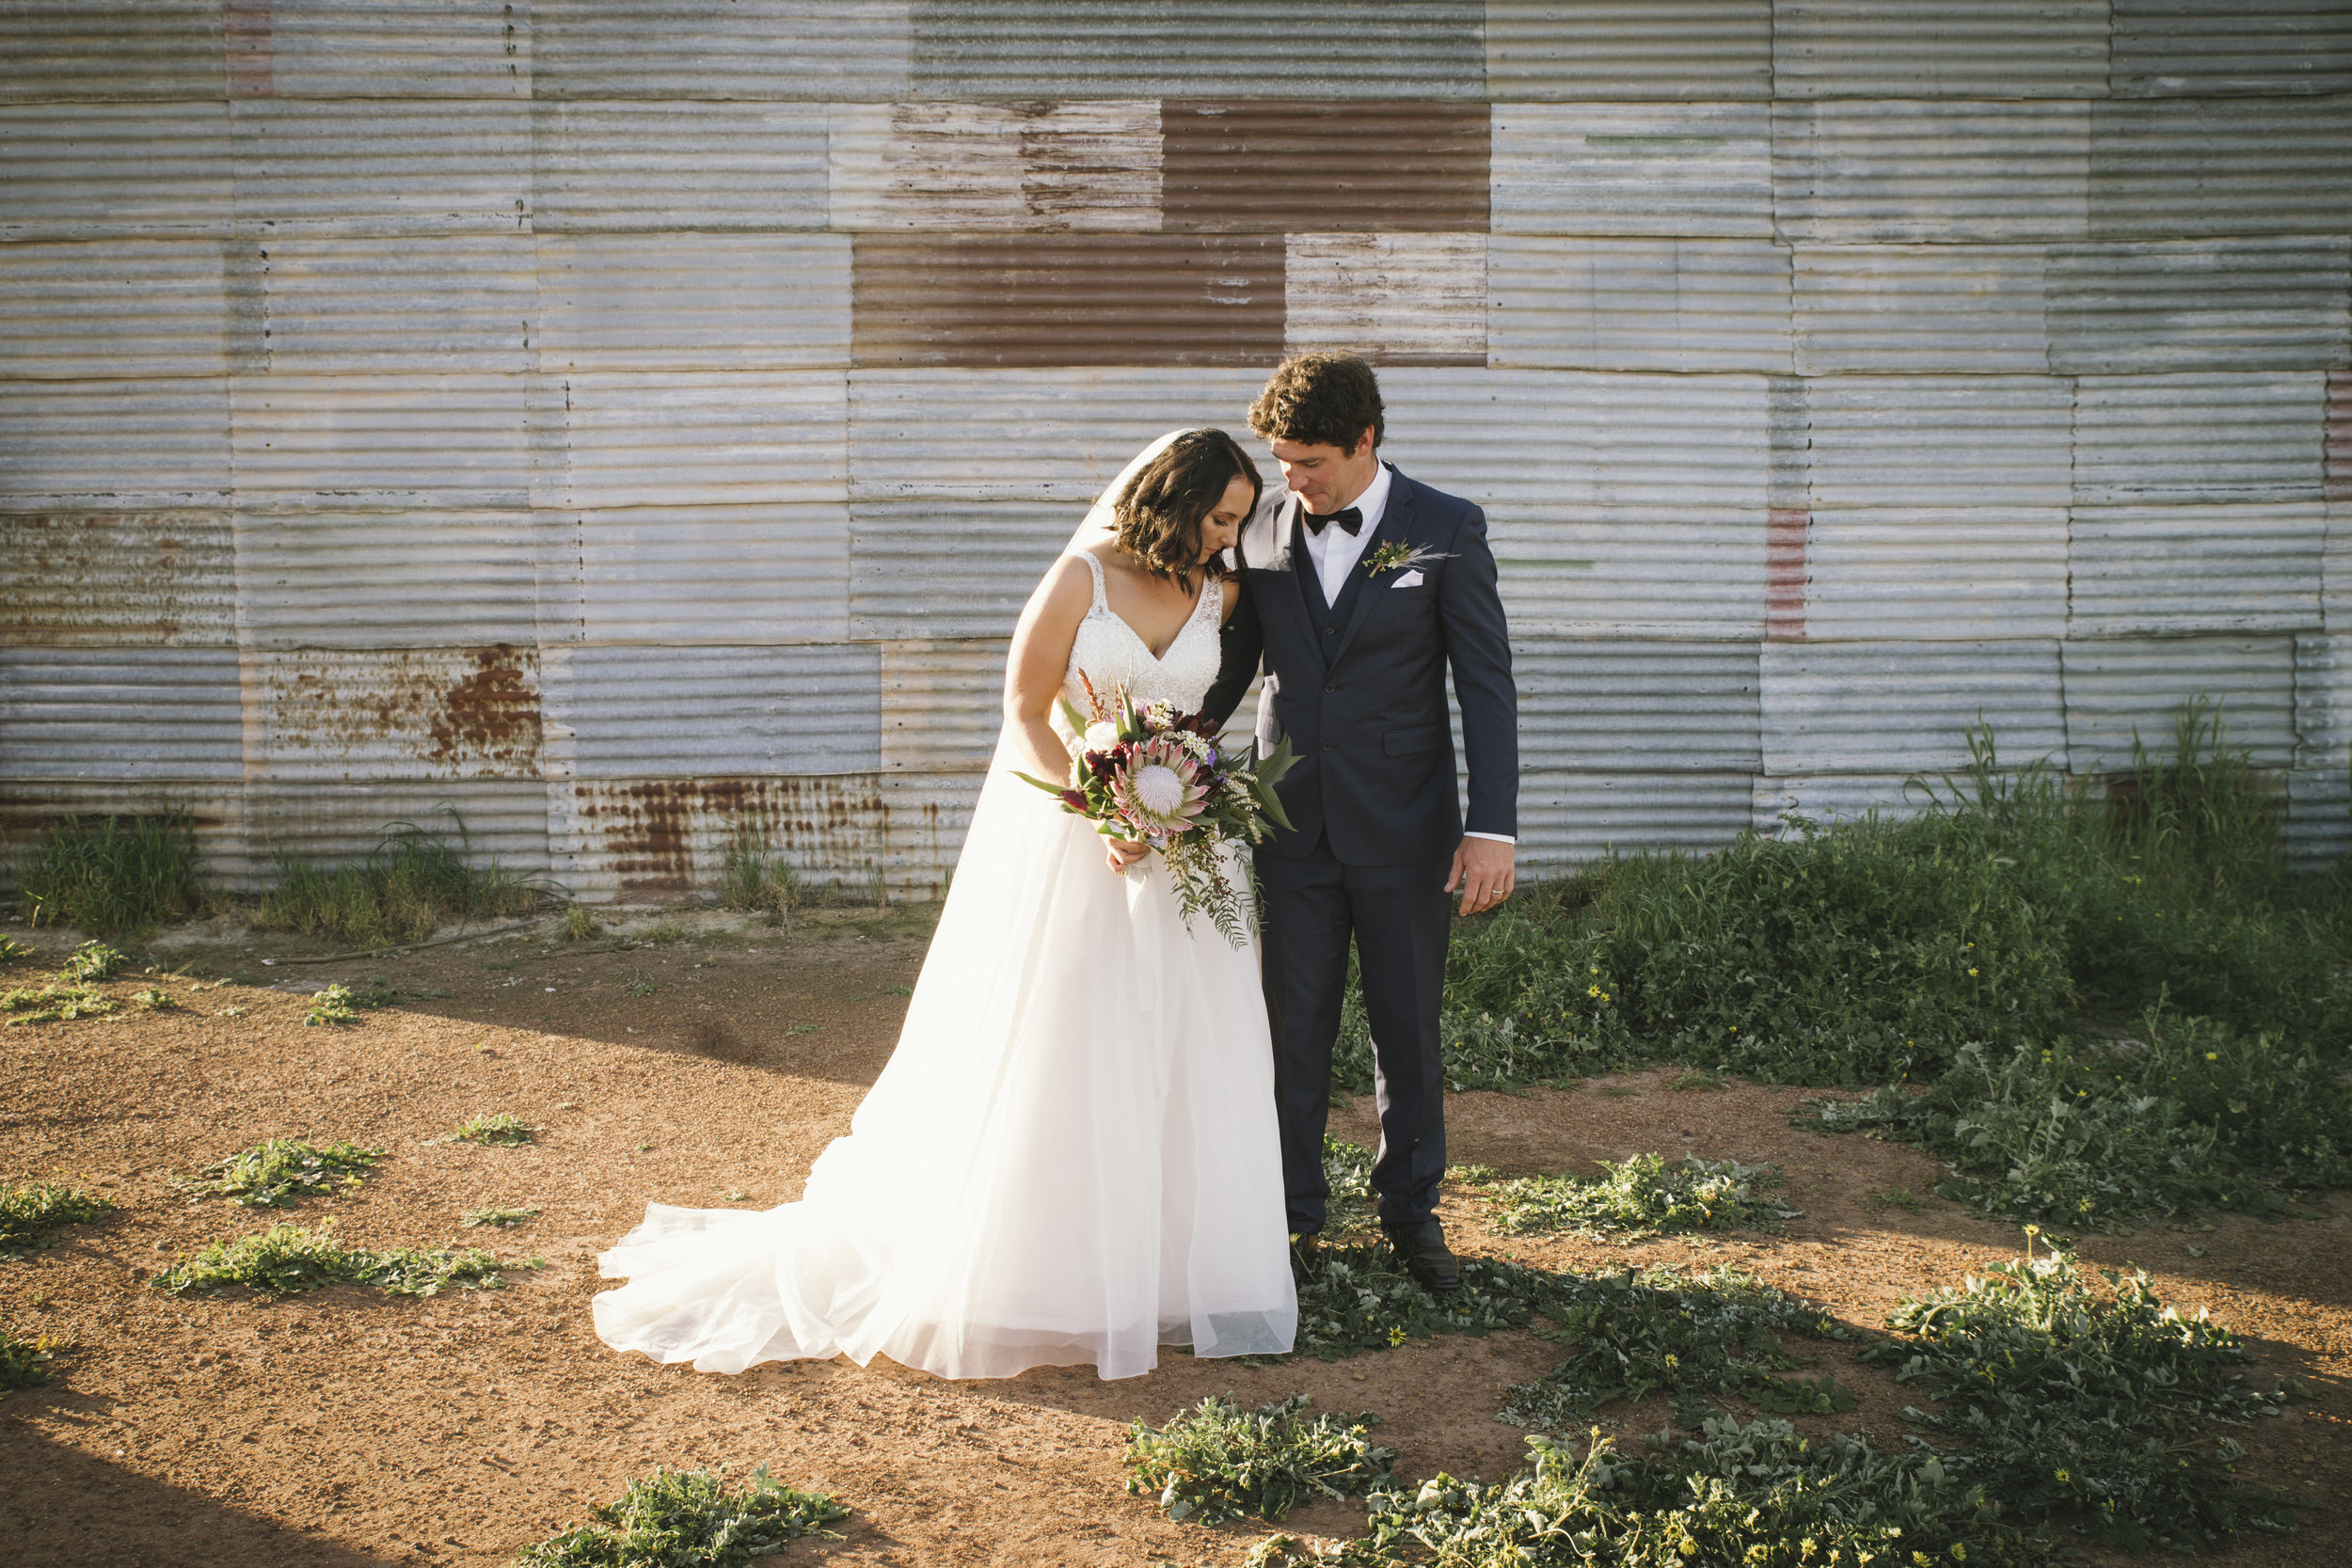 Angie Roe Photography Wheatbelt Avon Valley Farm Wedding (46).jpg